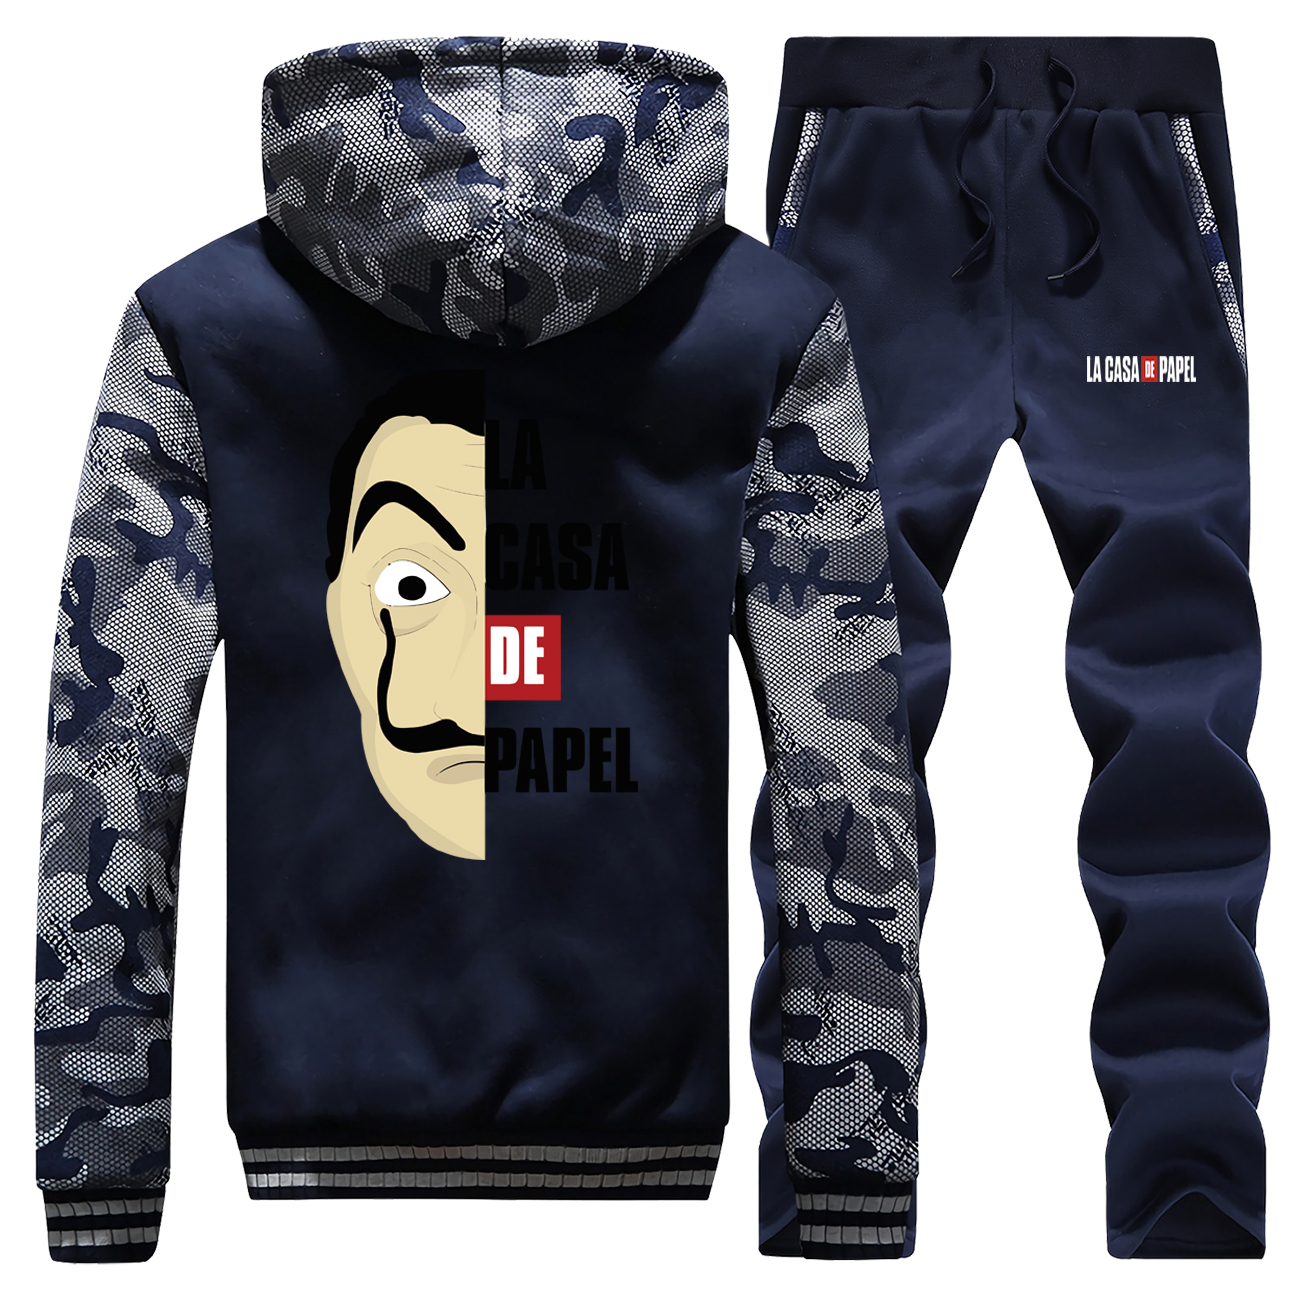 La Casa De Papel Mens Brand Tracksuit Warm Winter Jacket Thick Camouflage Men Hoodies+Sweatpants 2 Piece Sets Hip Hop Sweatshirt